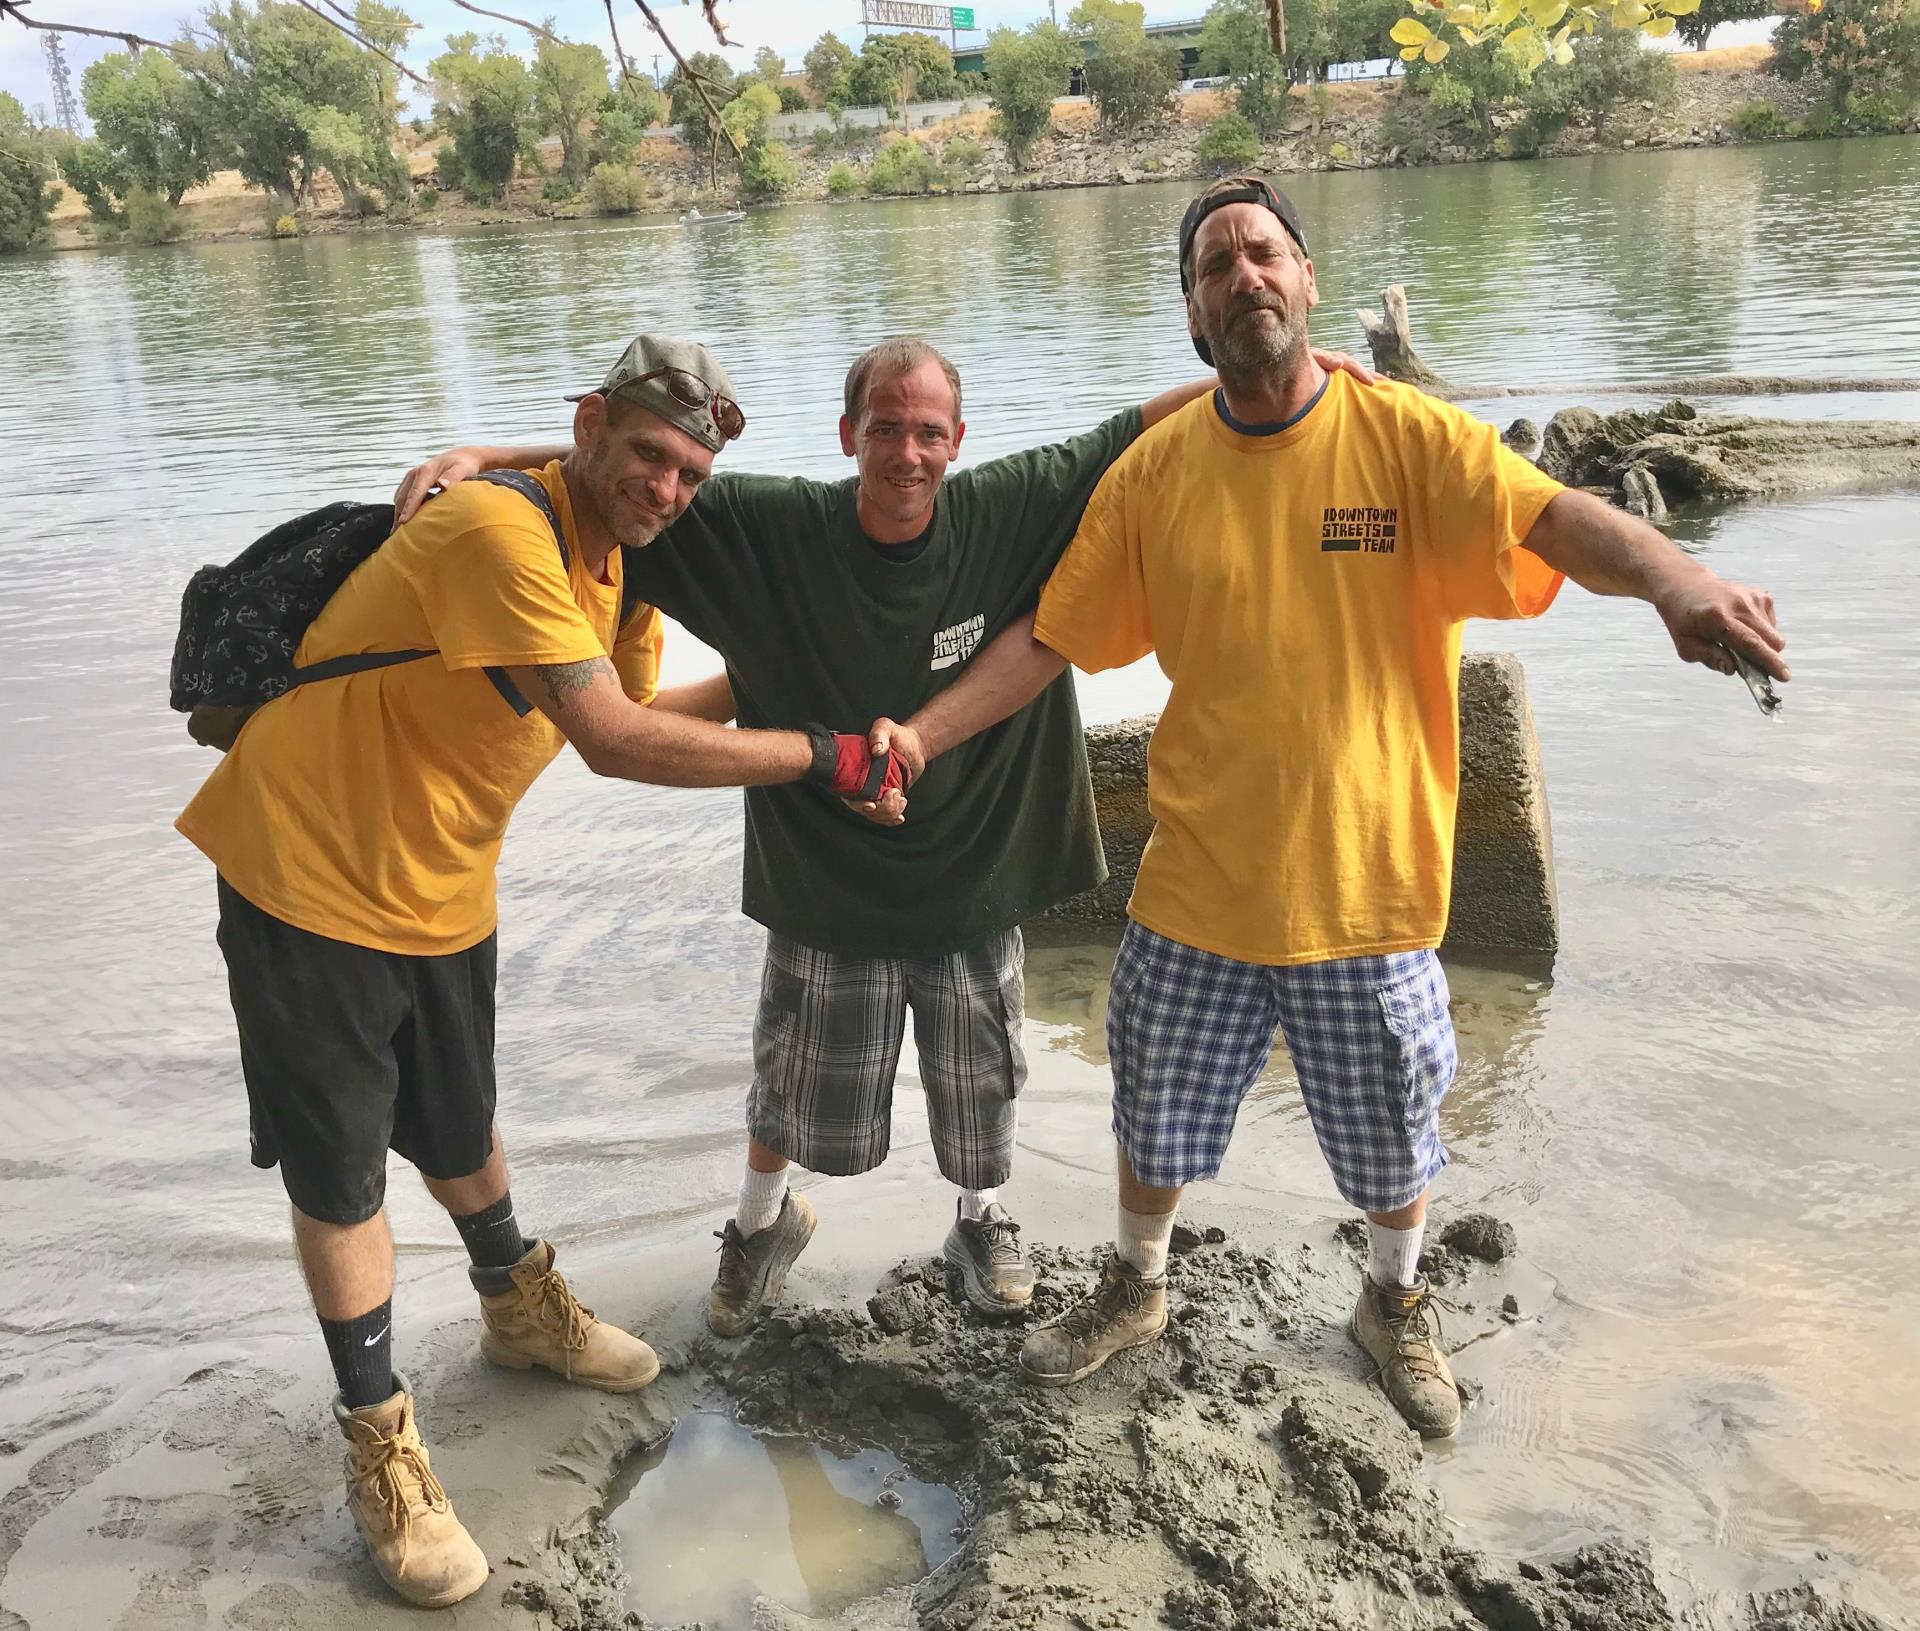 downtown streets team participants help clean river